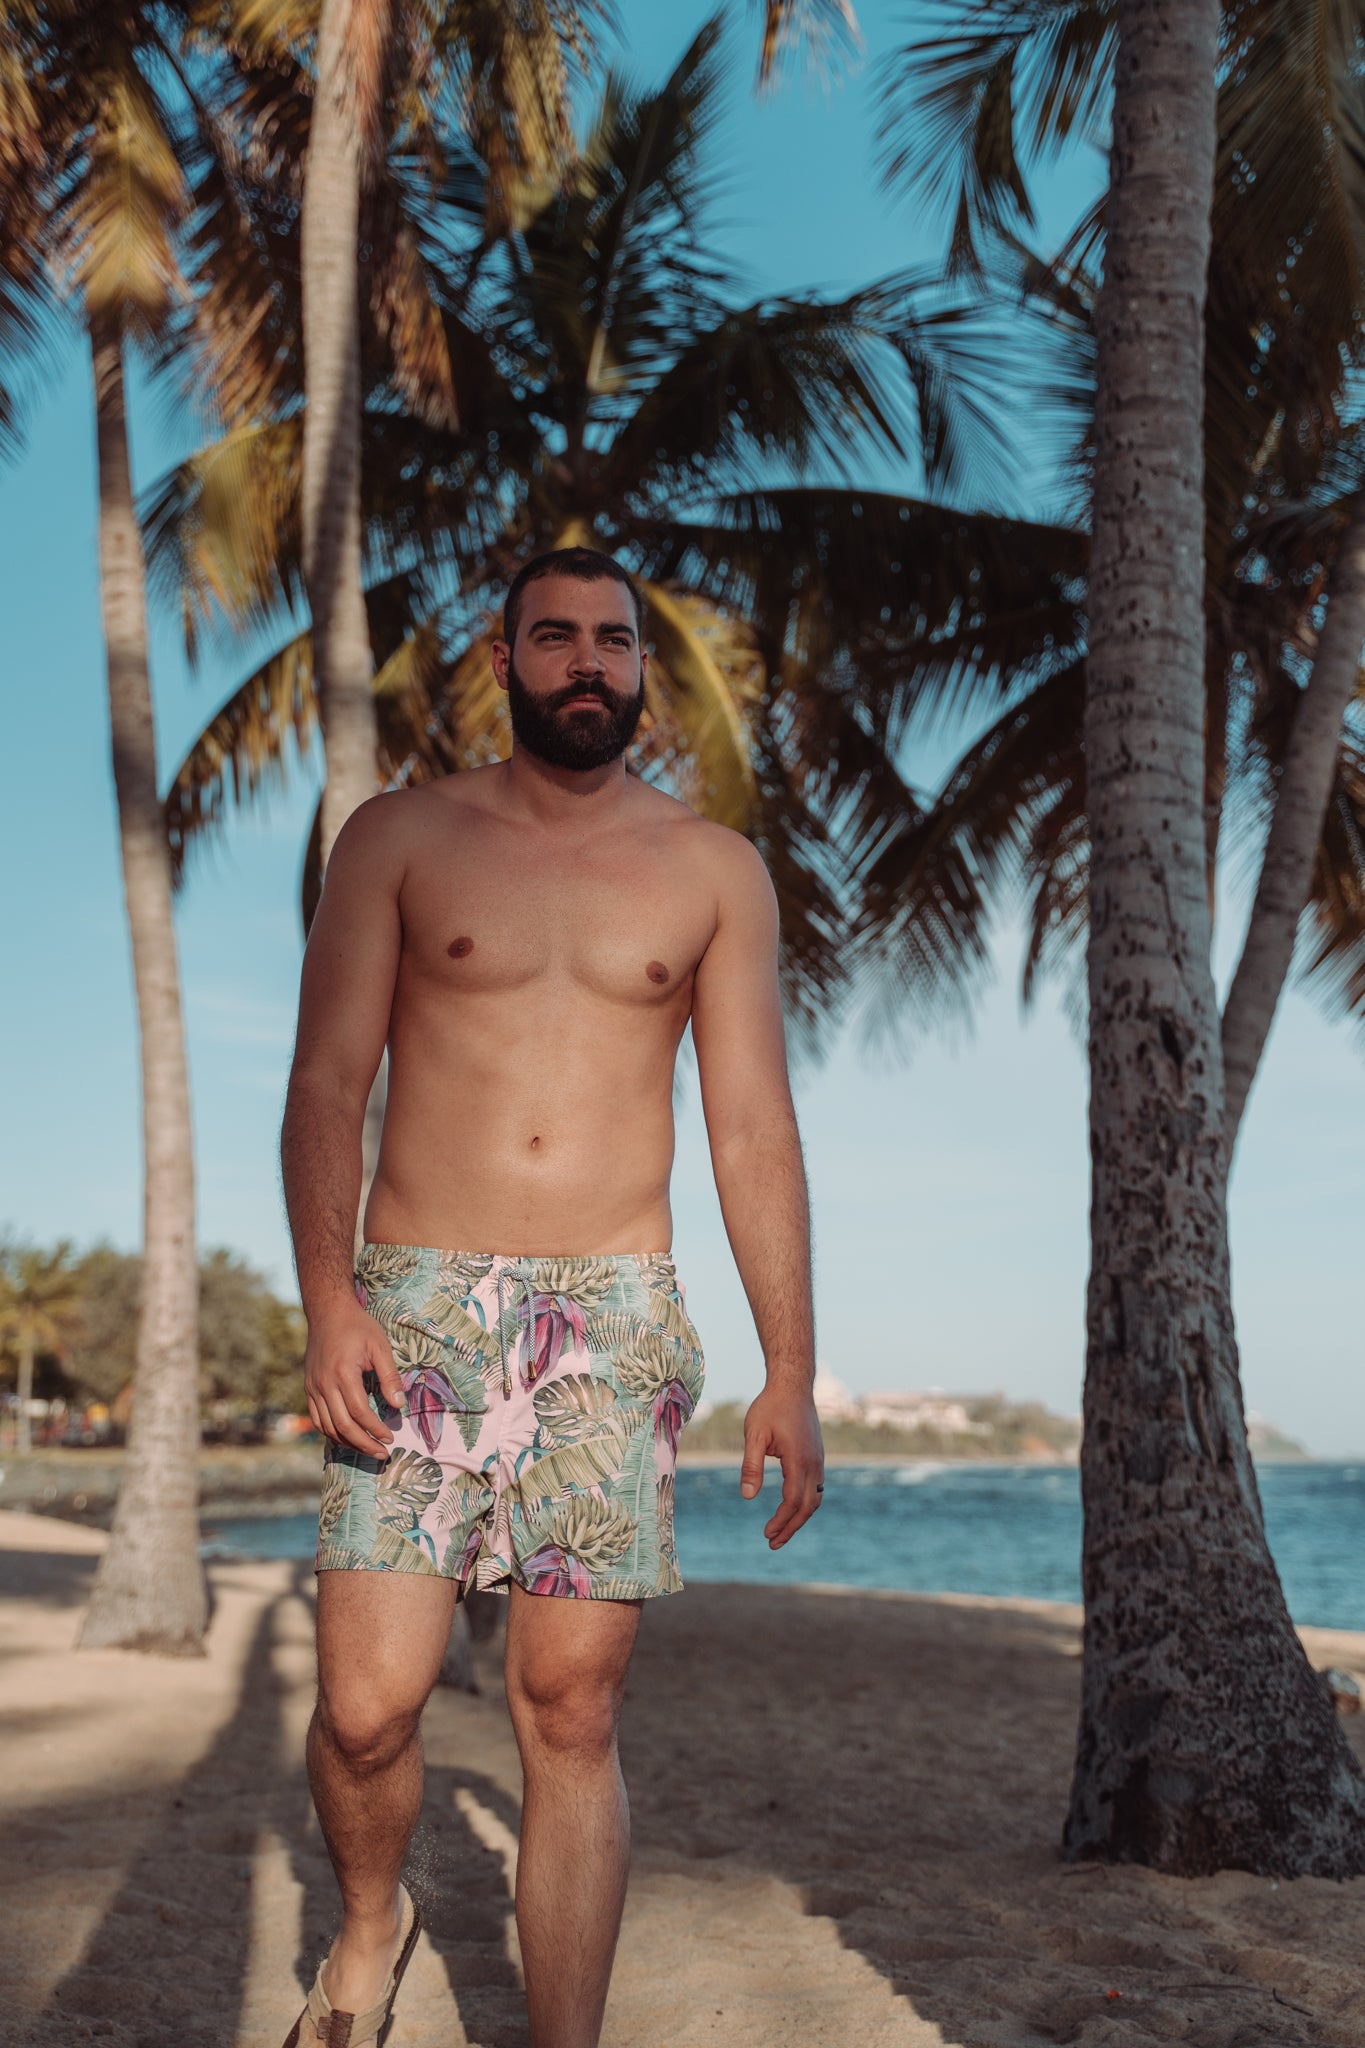 Male model shirtless walking in front of palm trees wearing amazing swim trunk